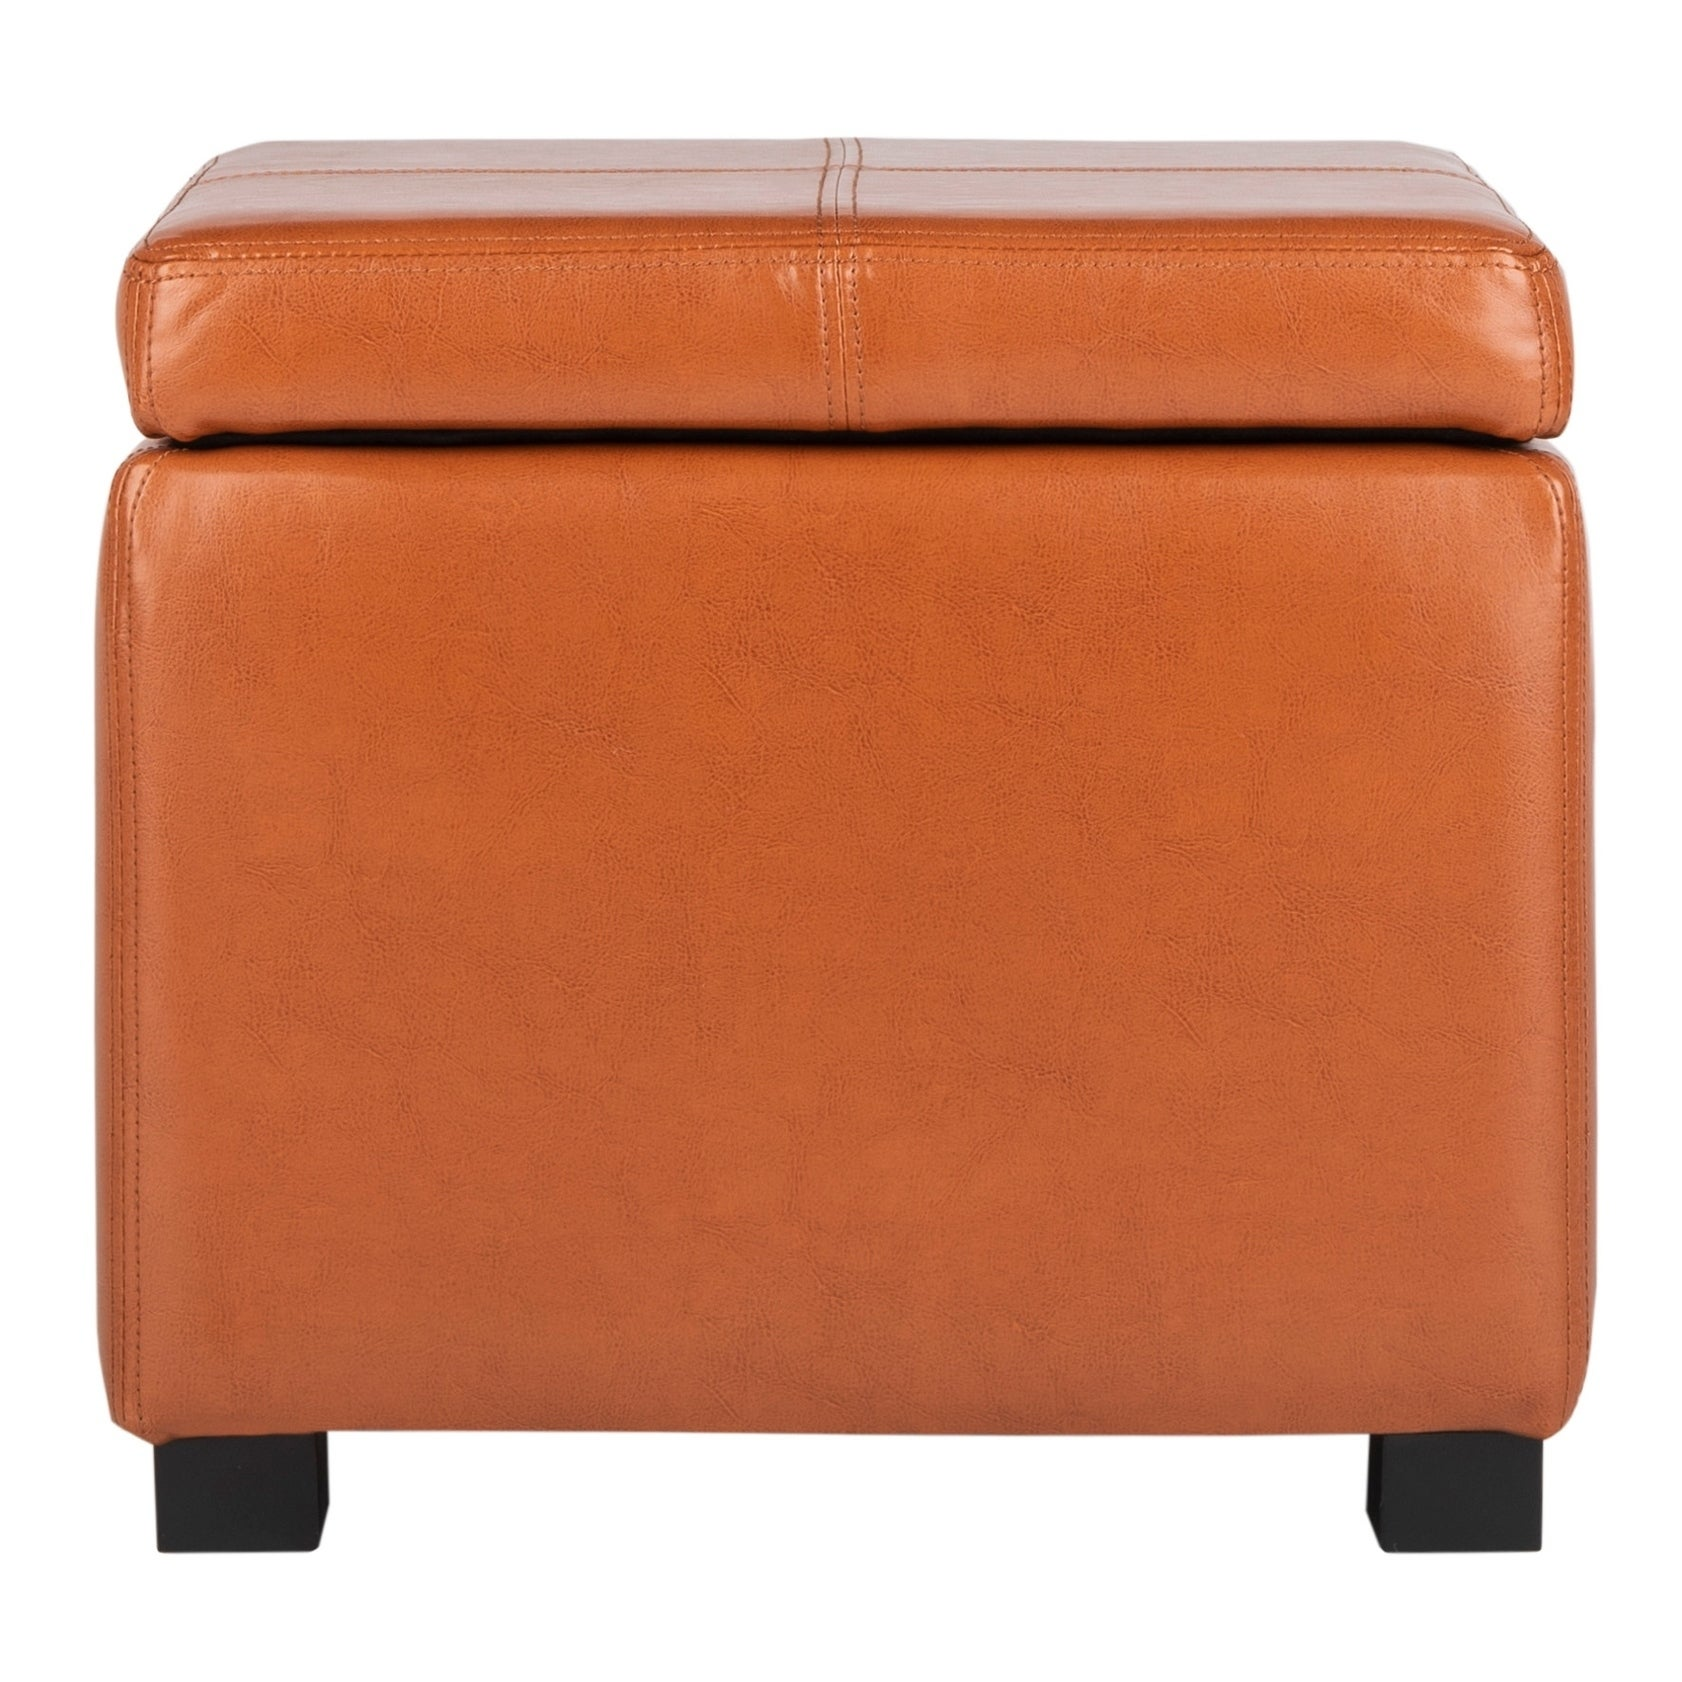 Shop safavieh broadway saddle leather storage ottoman on sale free shipping today overstock com 5880659